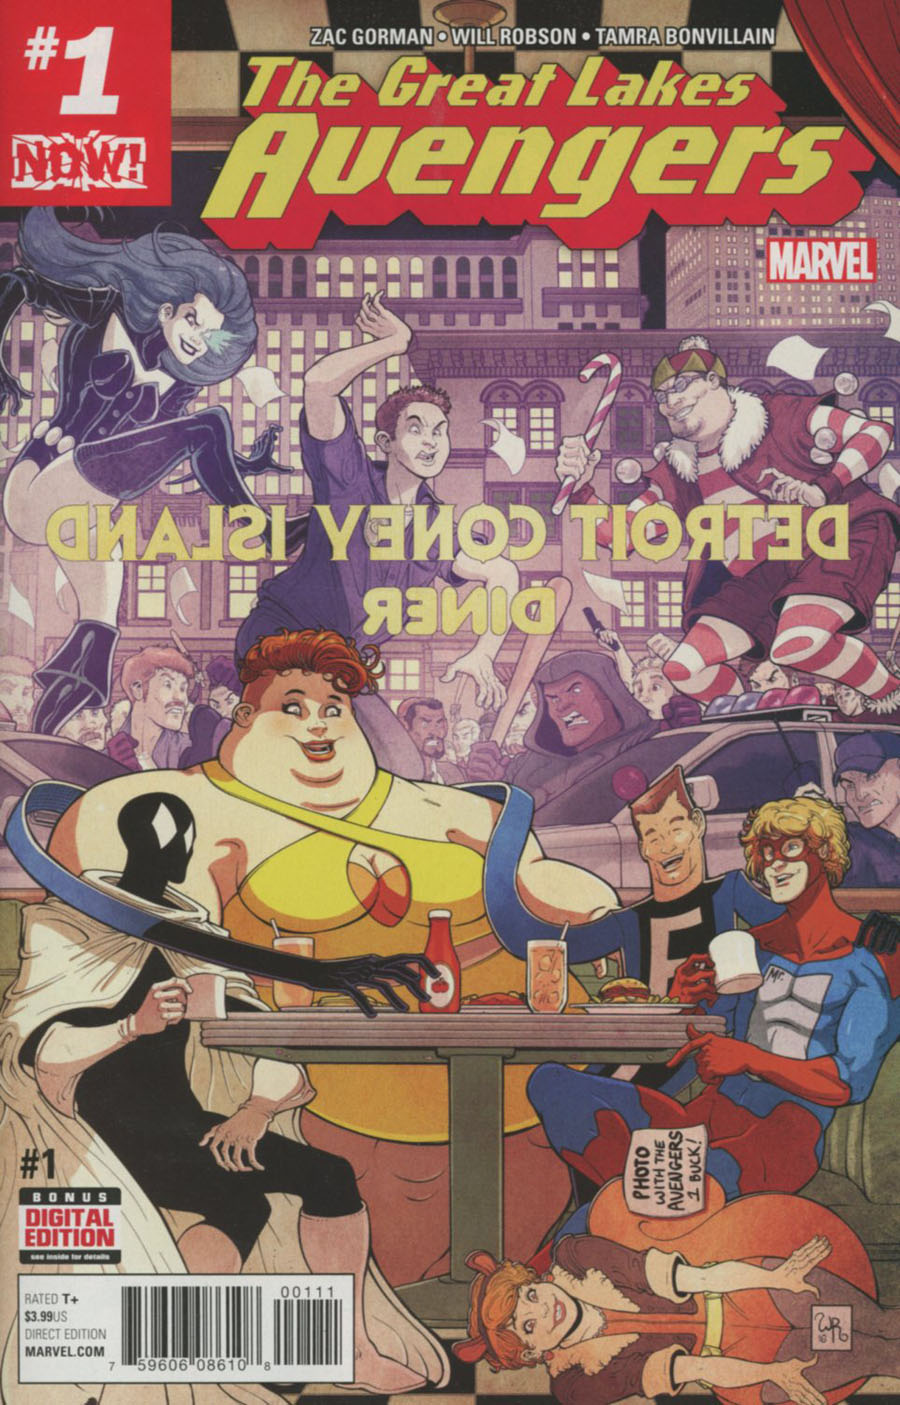 Great Lakes Avengers #1 Cover A Regular Will Robson Cover (Marvel Now Tie-In)